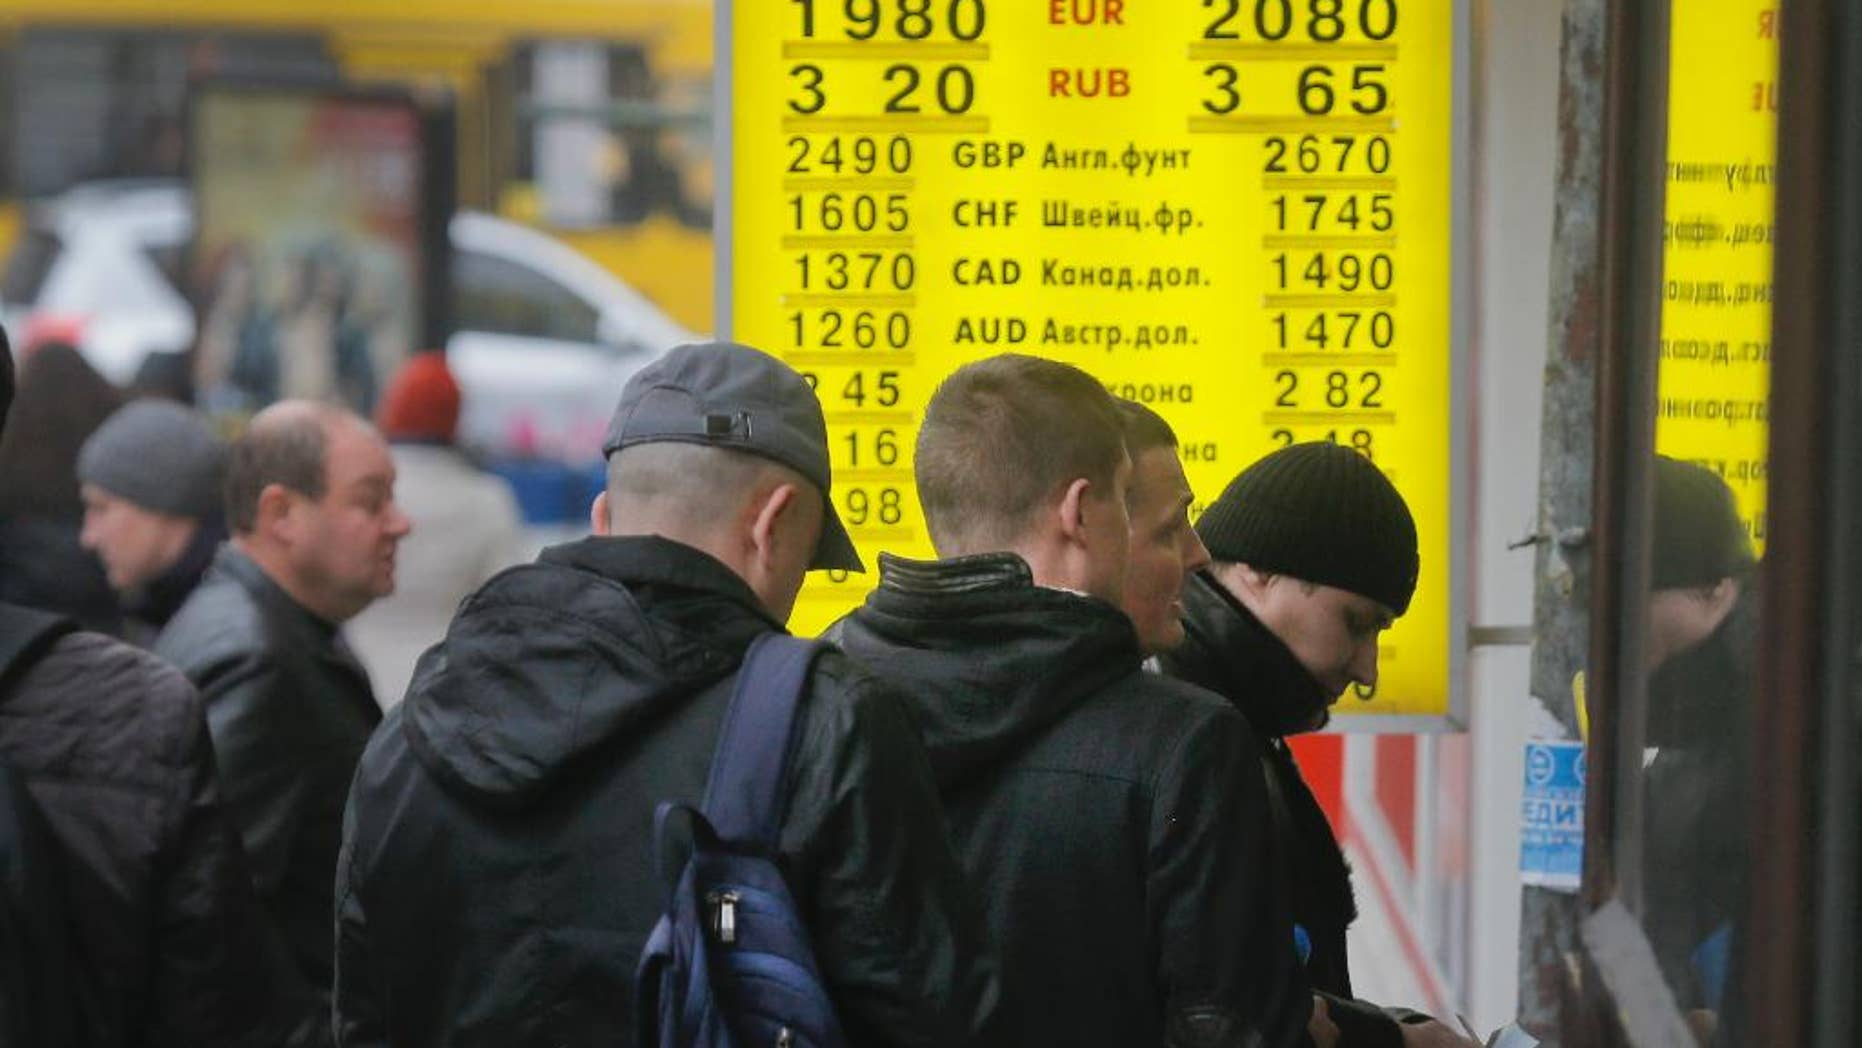 People stand in line at a currency exchange bureau in Kiev, Ukraine, Thursday, Nov. 13, 2014.  Ukraine's hryvnia plunged to UAH 15.56/USD on Nov. 13, a 14% decline since Nov. 5, when the National Bank of Ukraine reduced its interventions at the ForEx and allowed further weakening. Ukraine's national currency has already lost nearly 47% of its value this year, falling from UAH 8.1/USD.  (AP Photo/Efrem Lukatsky)